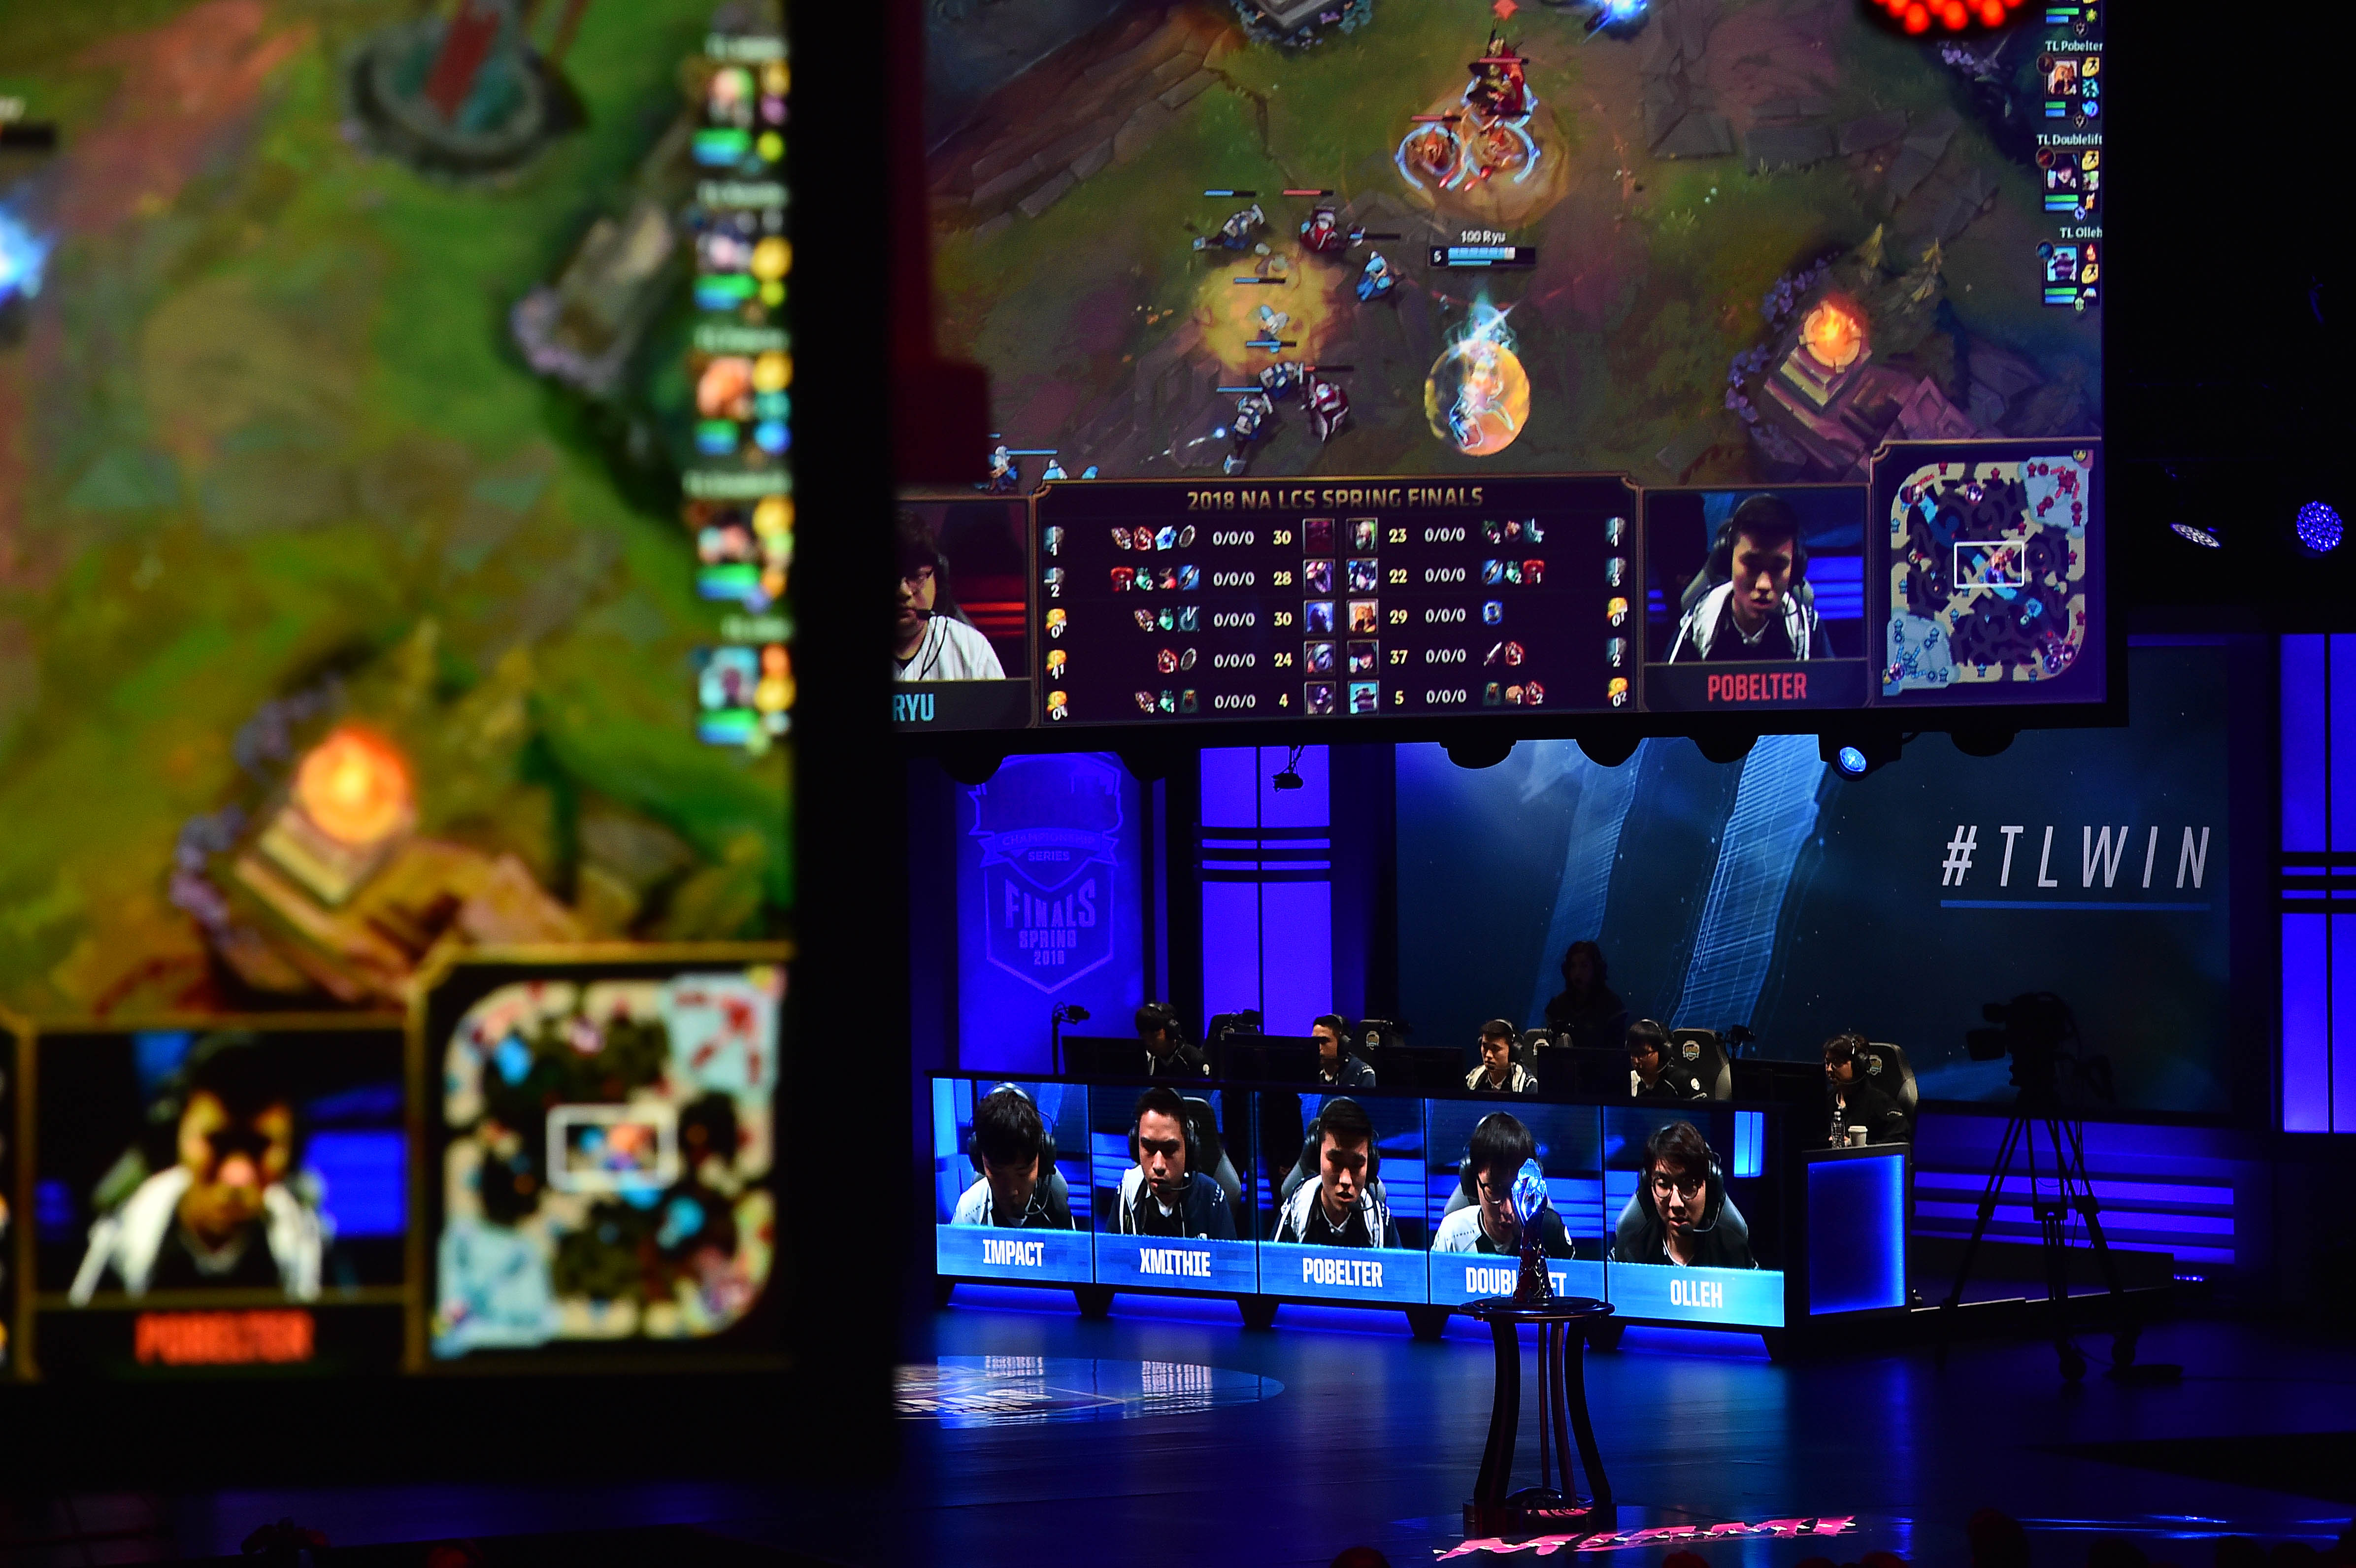 E-gaming: League of Legends 2018 North America Spring Finals